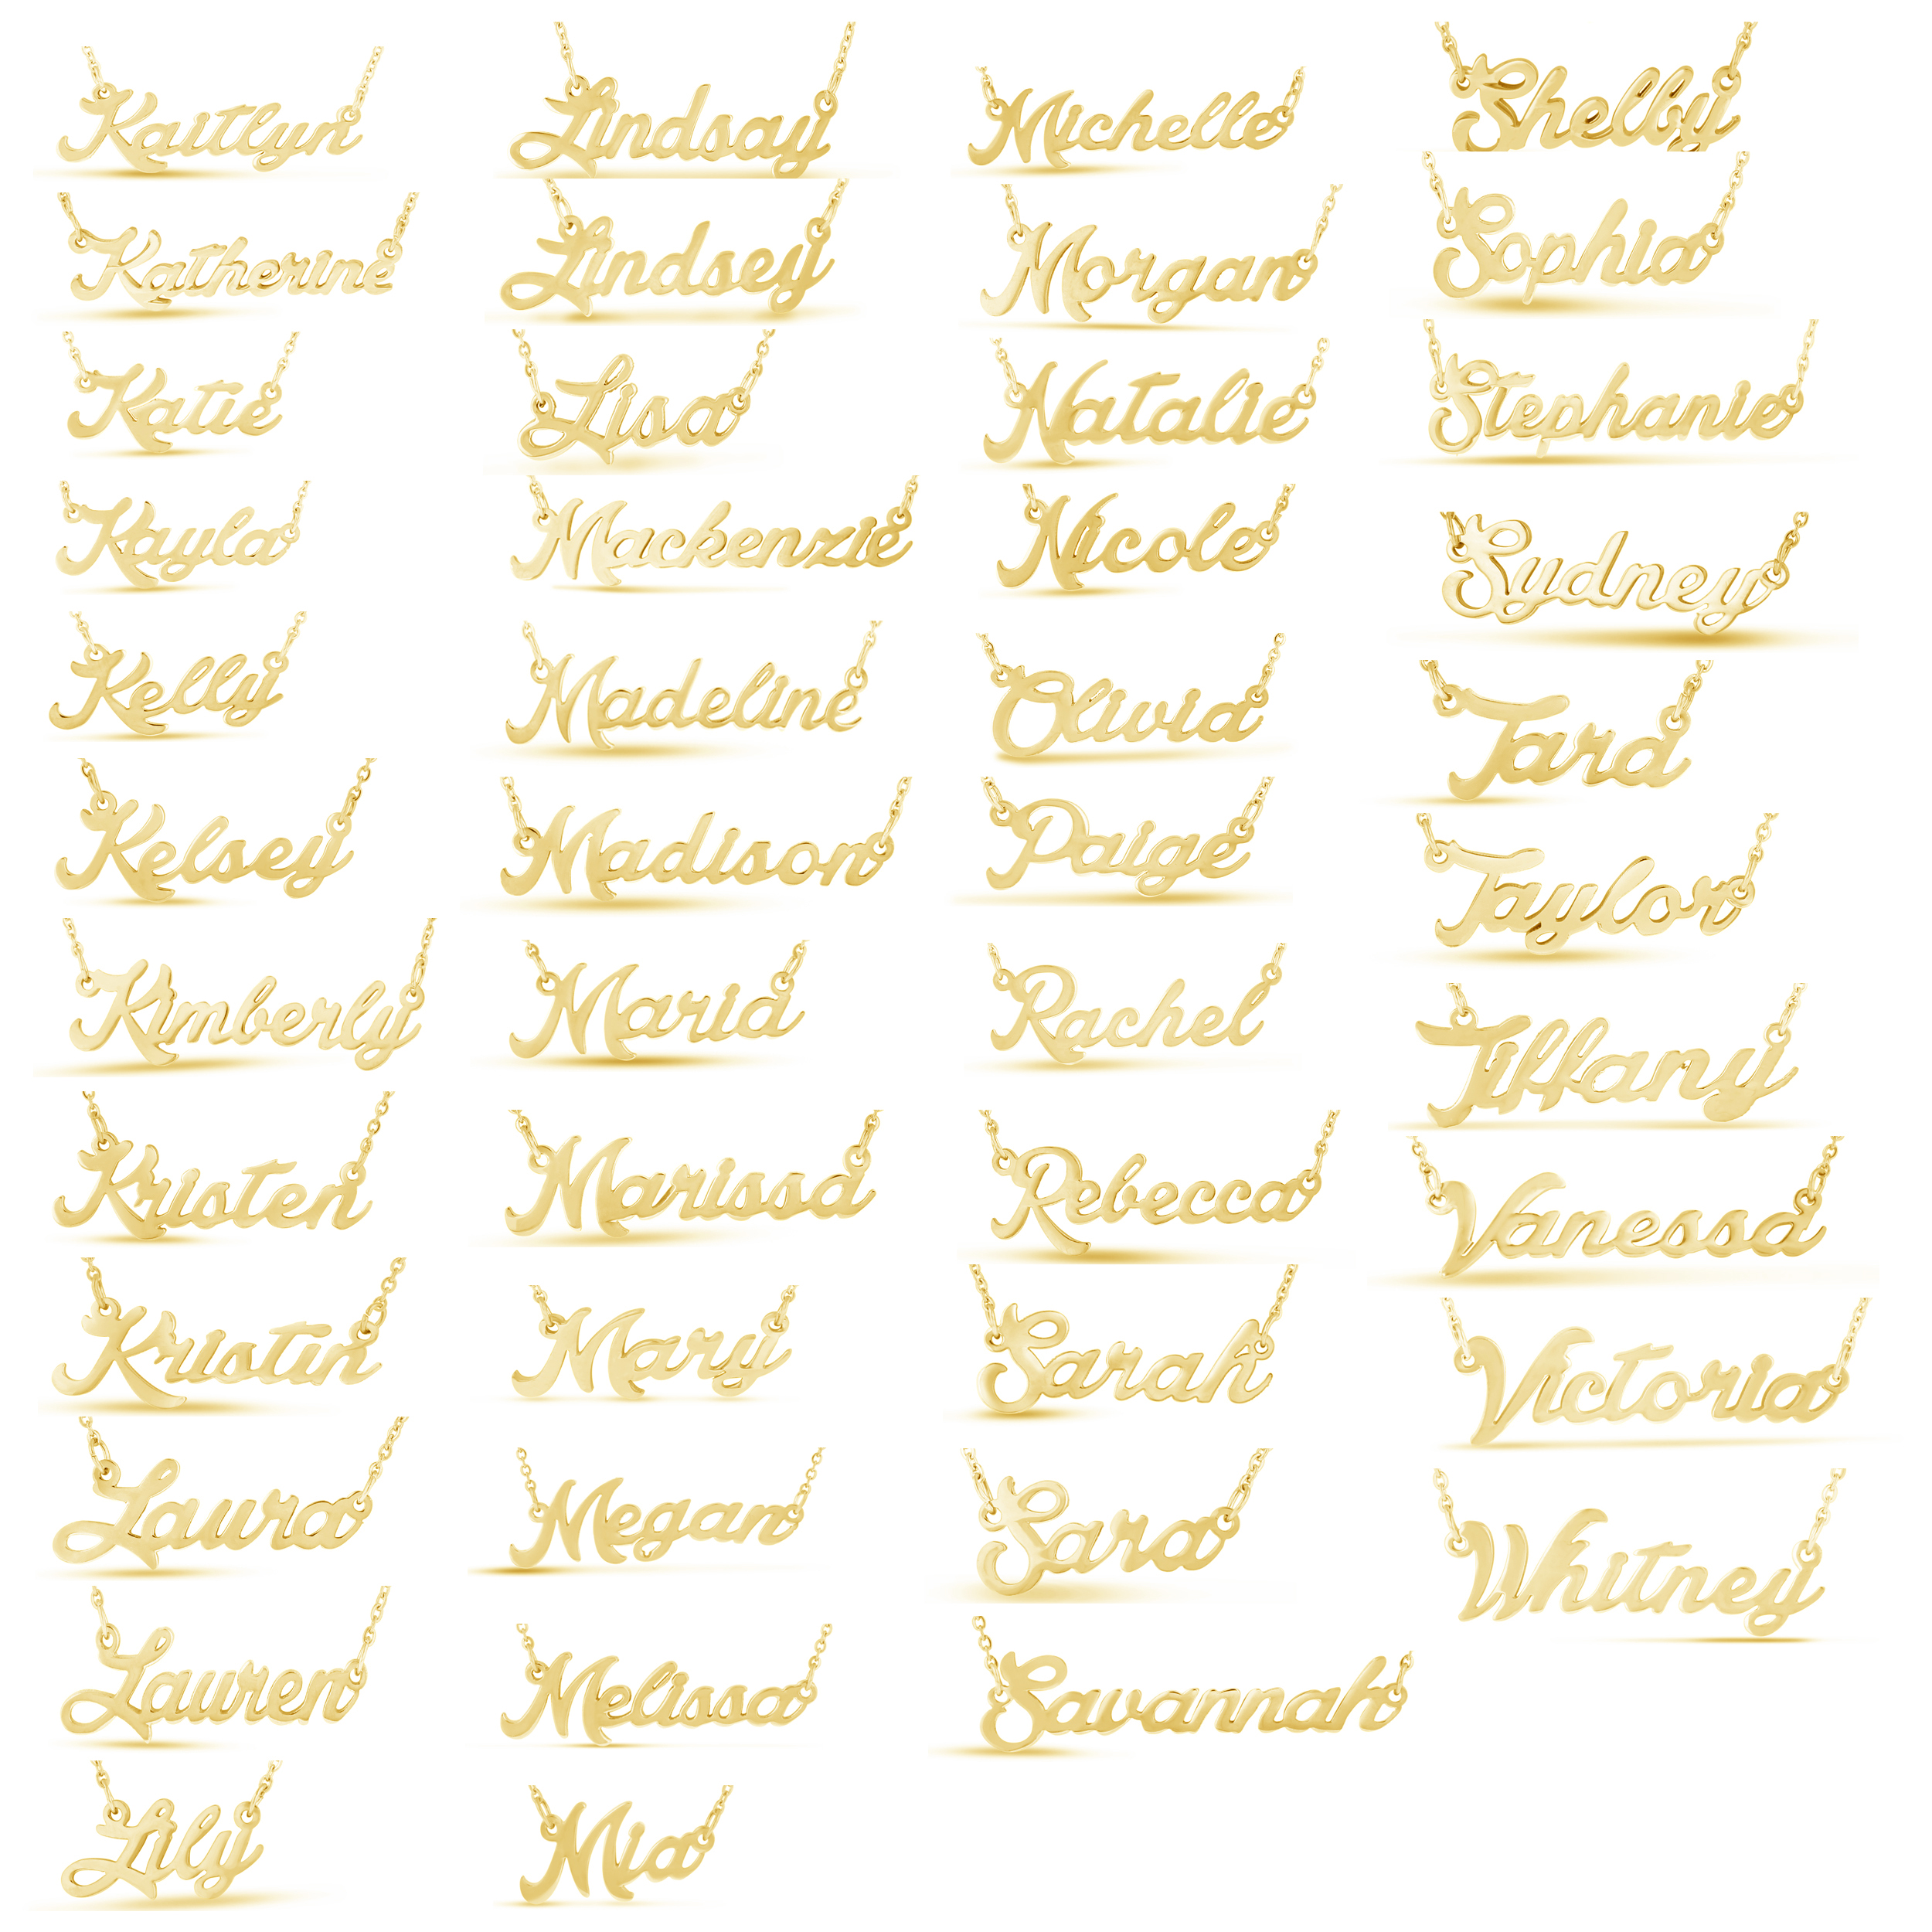 Personalized name necklace silvergold plated 100 names personalized name necklace silver gold plated 100 names aloadofball Image collections